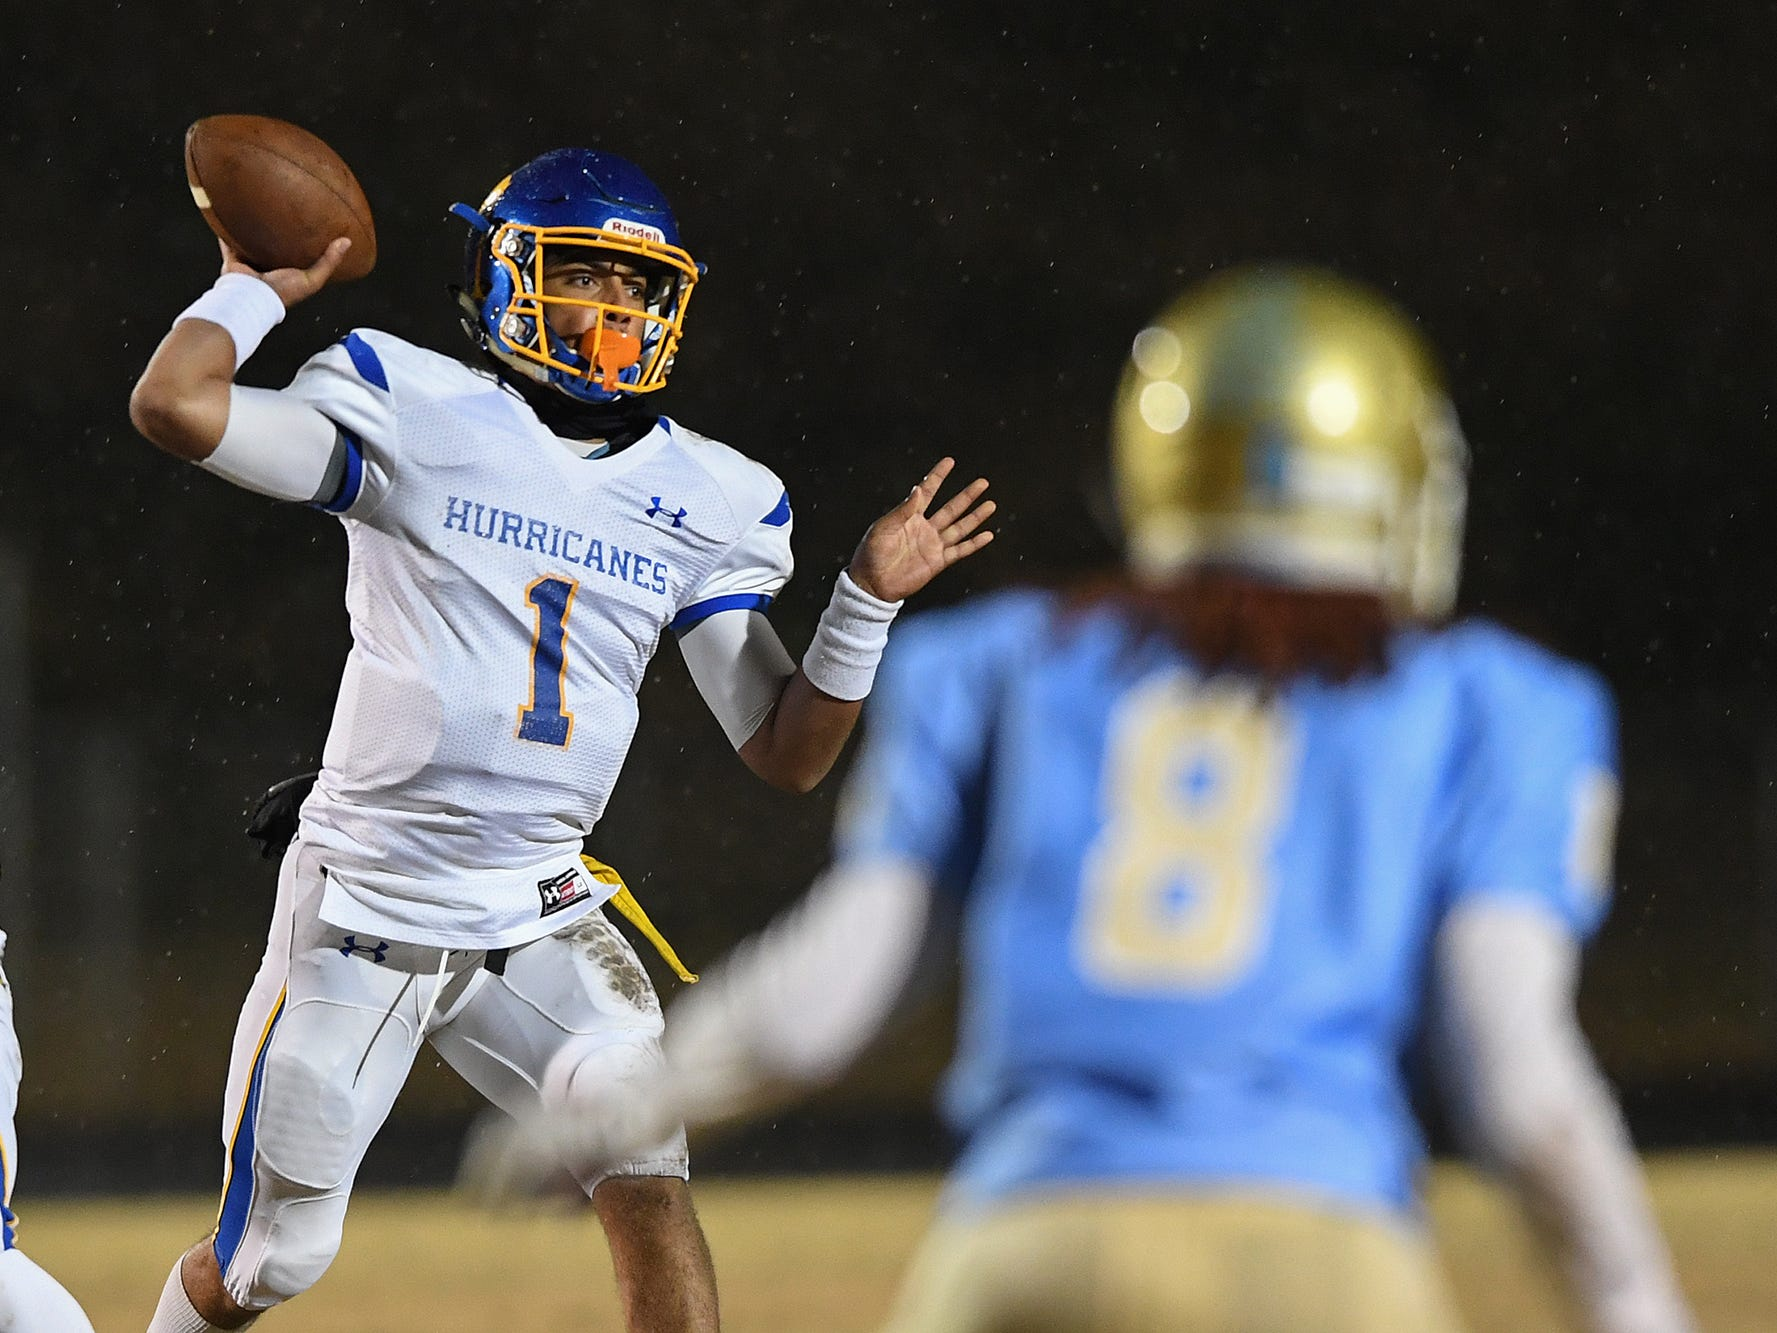 Wren quarterback Tyrell Jackson (1)  passes against Daniel during the playoffs. Jackson threw for 104 yards in the North-South all-star game.